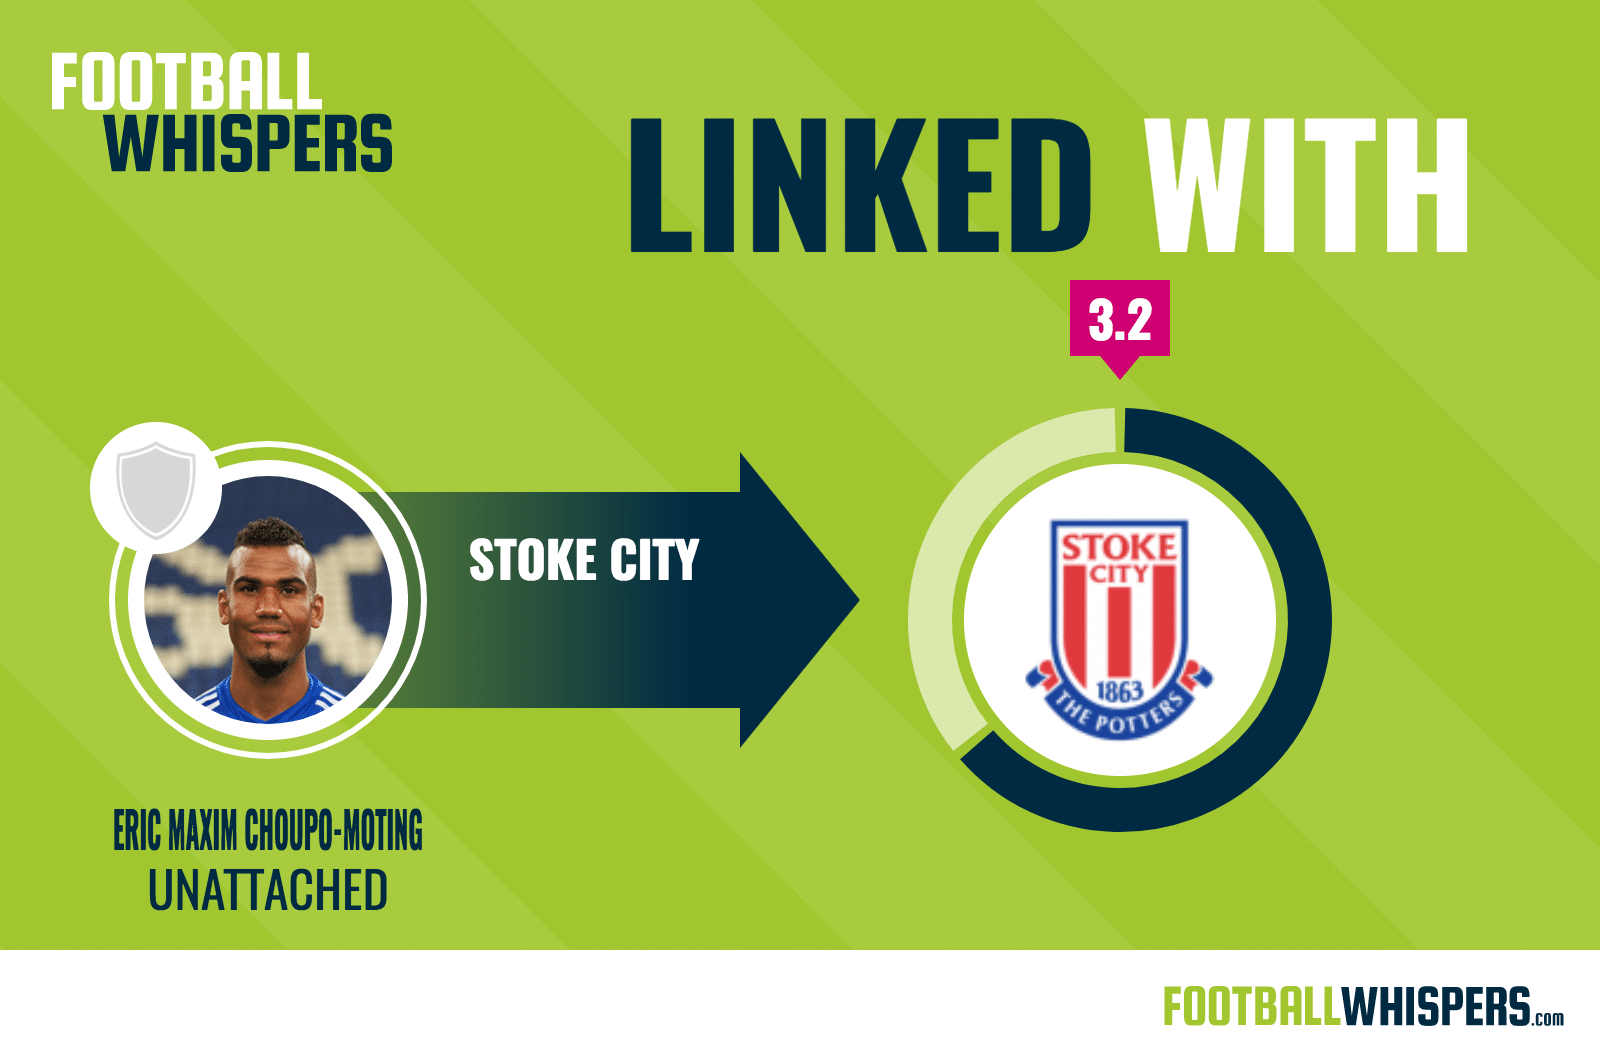 Choupo-Moting linked to Stoke